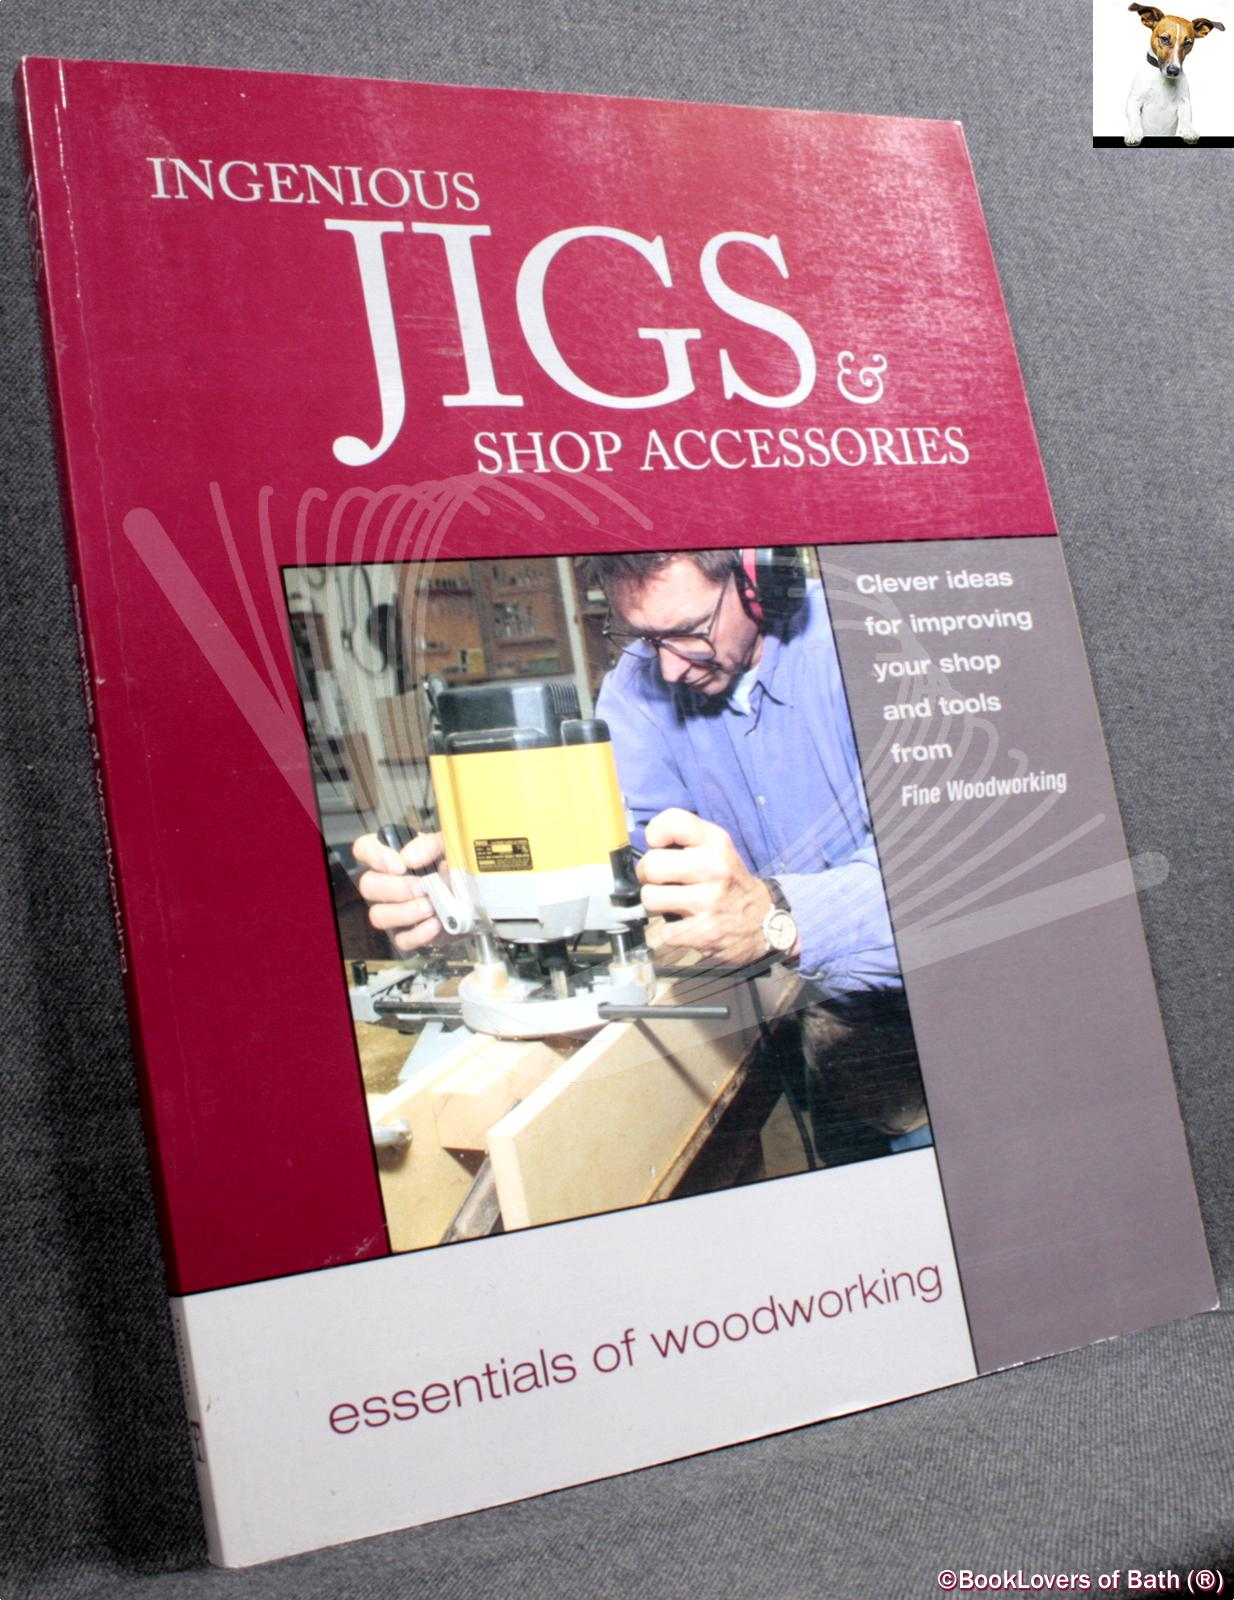 Ingenious Jigs & Shop Accessories: Clever Ideas for Improving Your Shop & Tools - Editors of Fine Woodworking